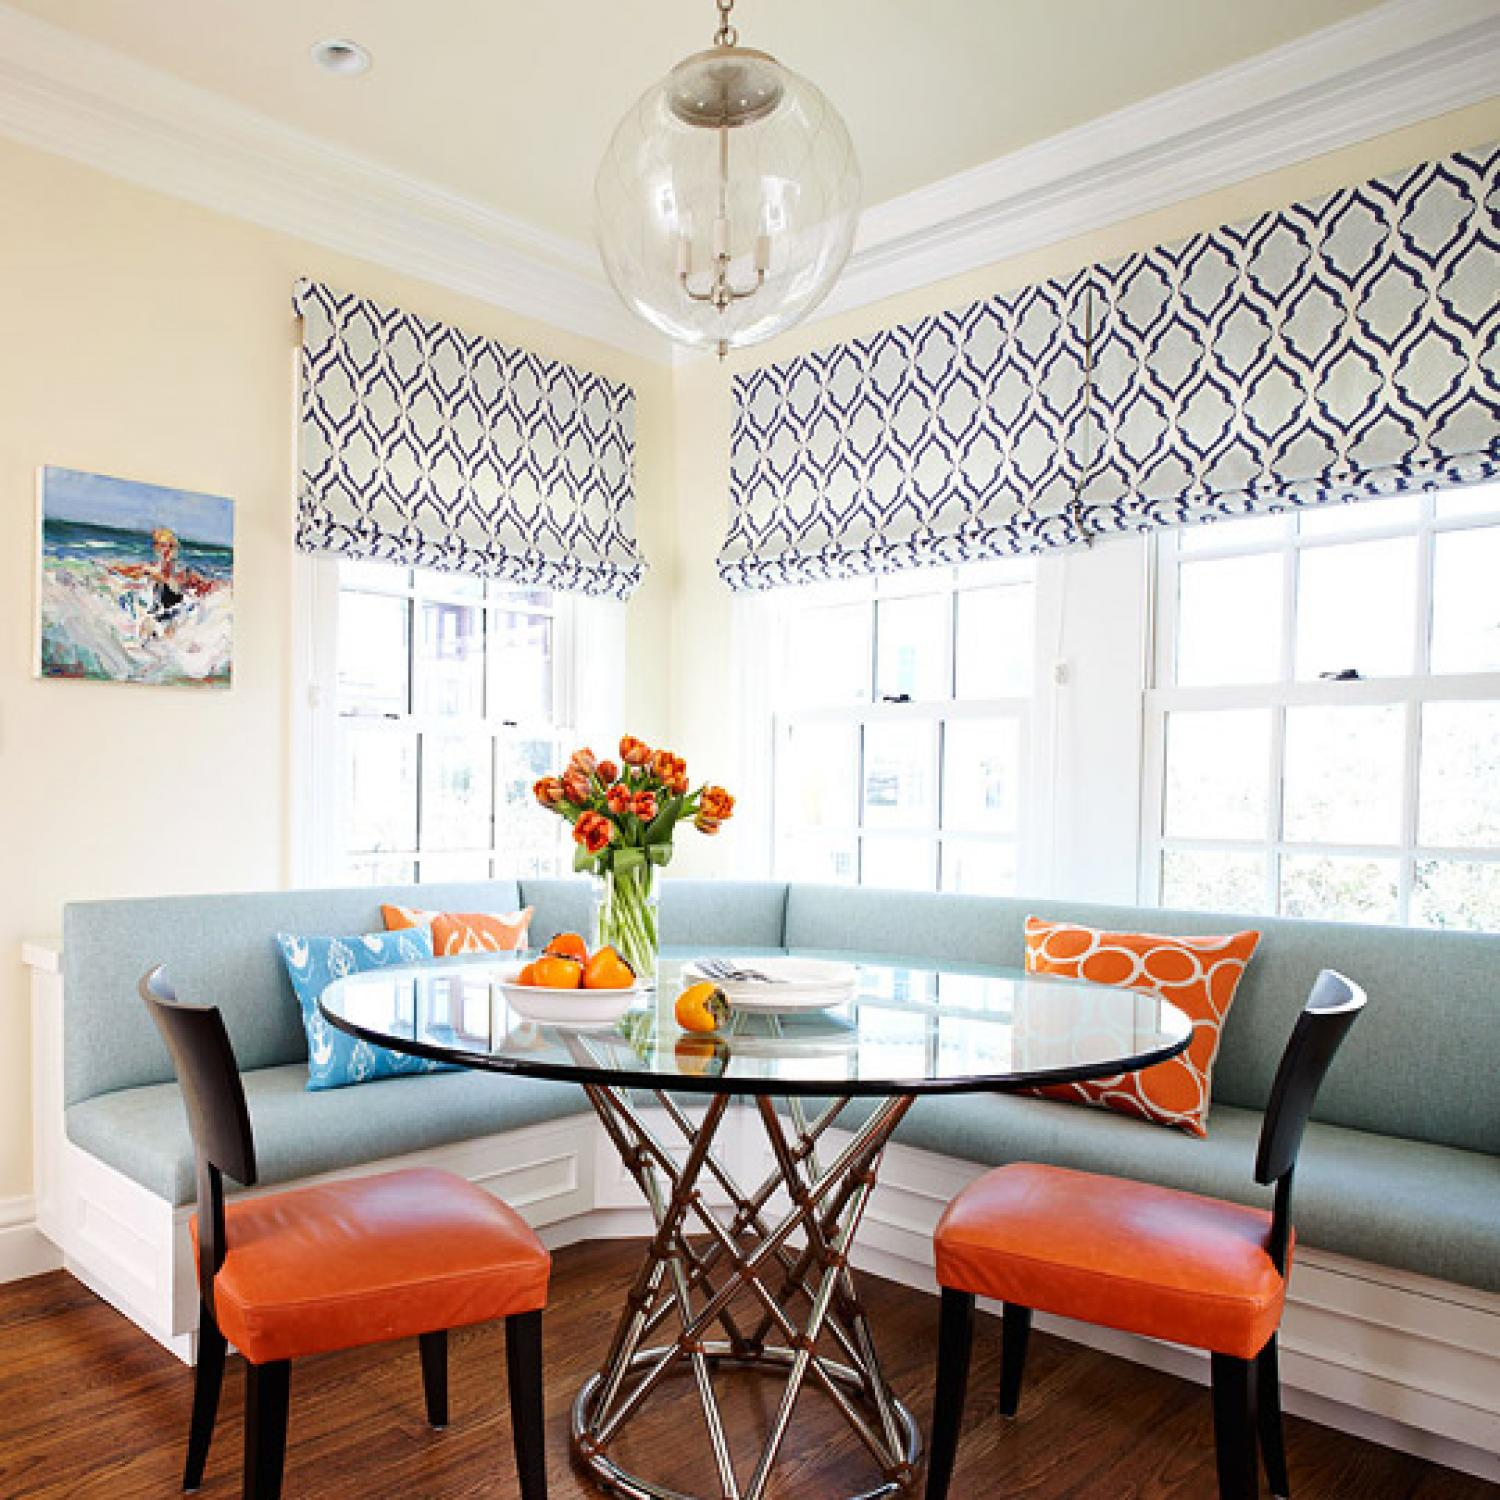 Dining Room Seating - Banquette or Upholstered Settee ...